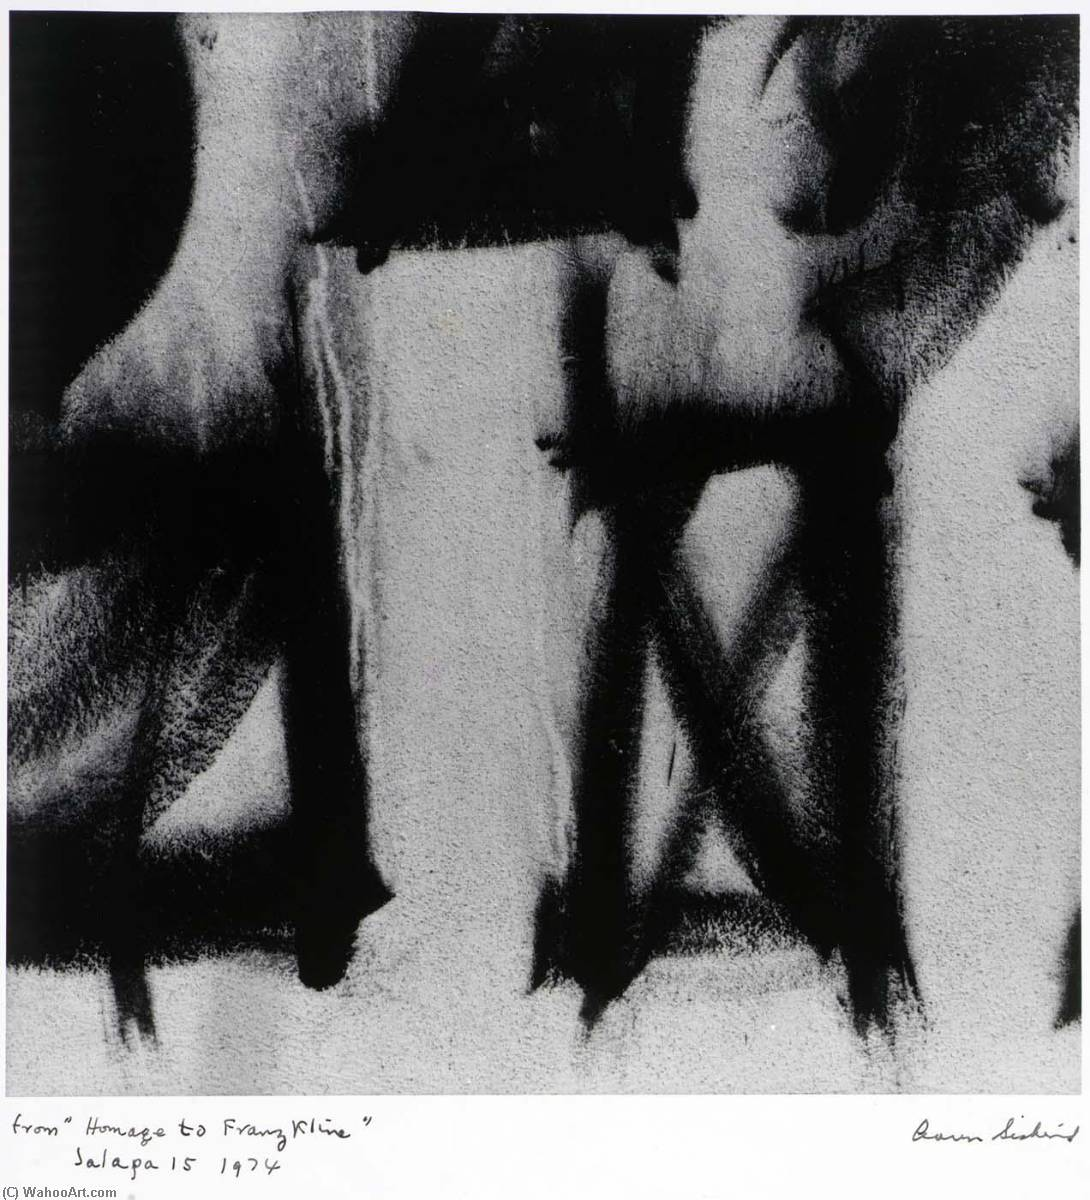 Jalapa 15 1974 , dal serie Omaggio a franz kline, stampa di Aaron Siskind (1903-1991, United States)